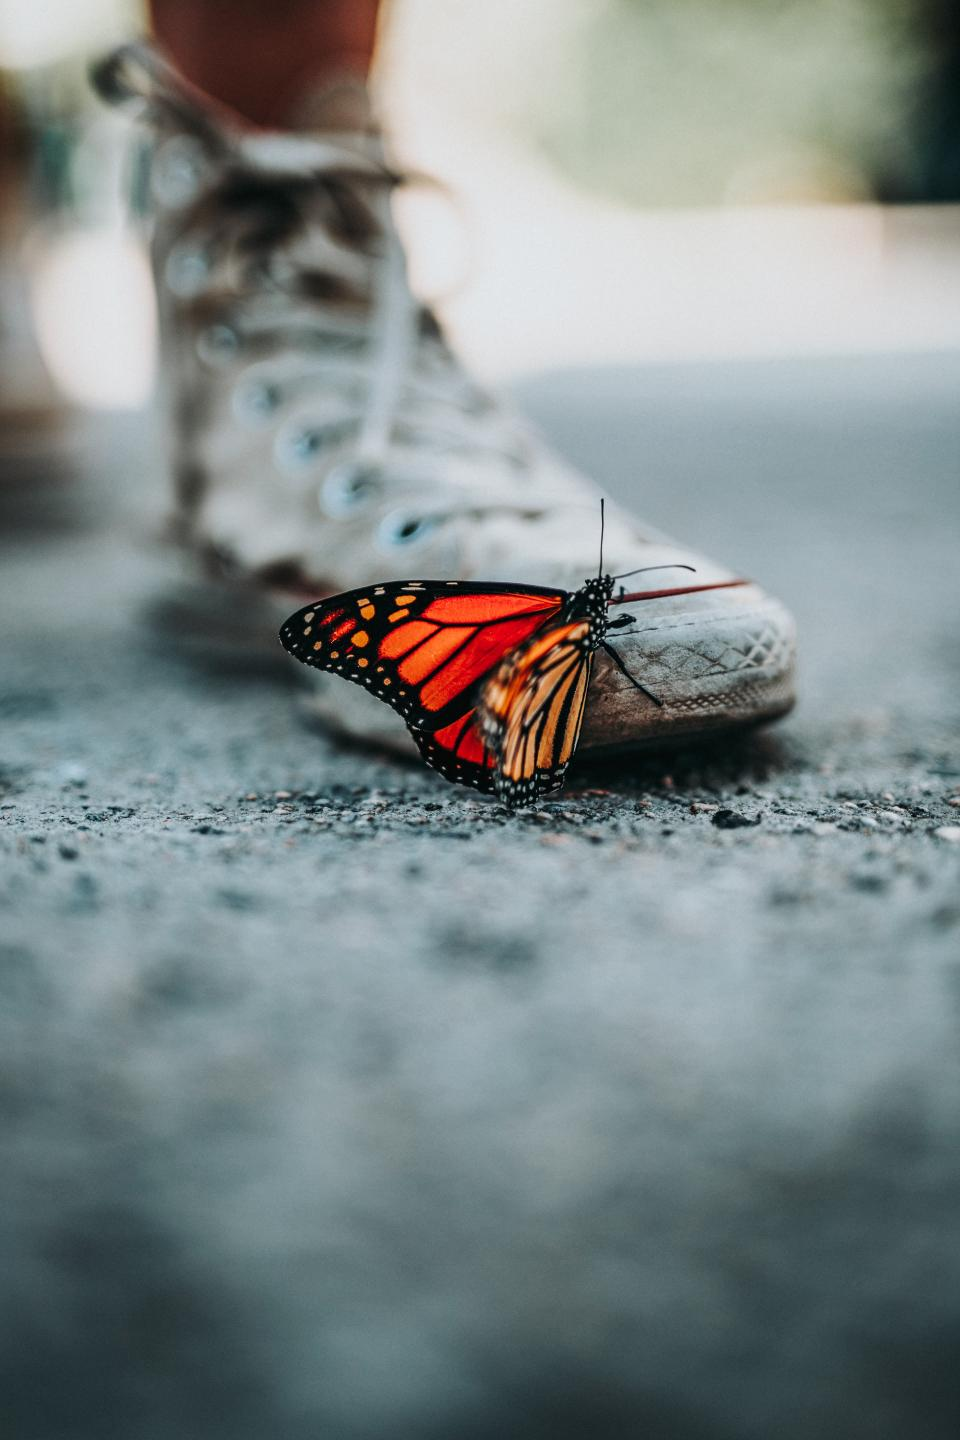 butterfly insect animal street blur shoe sneakers